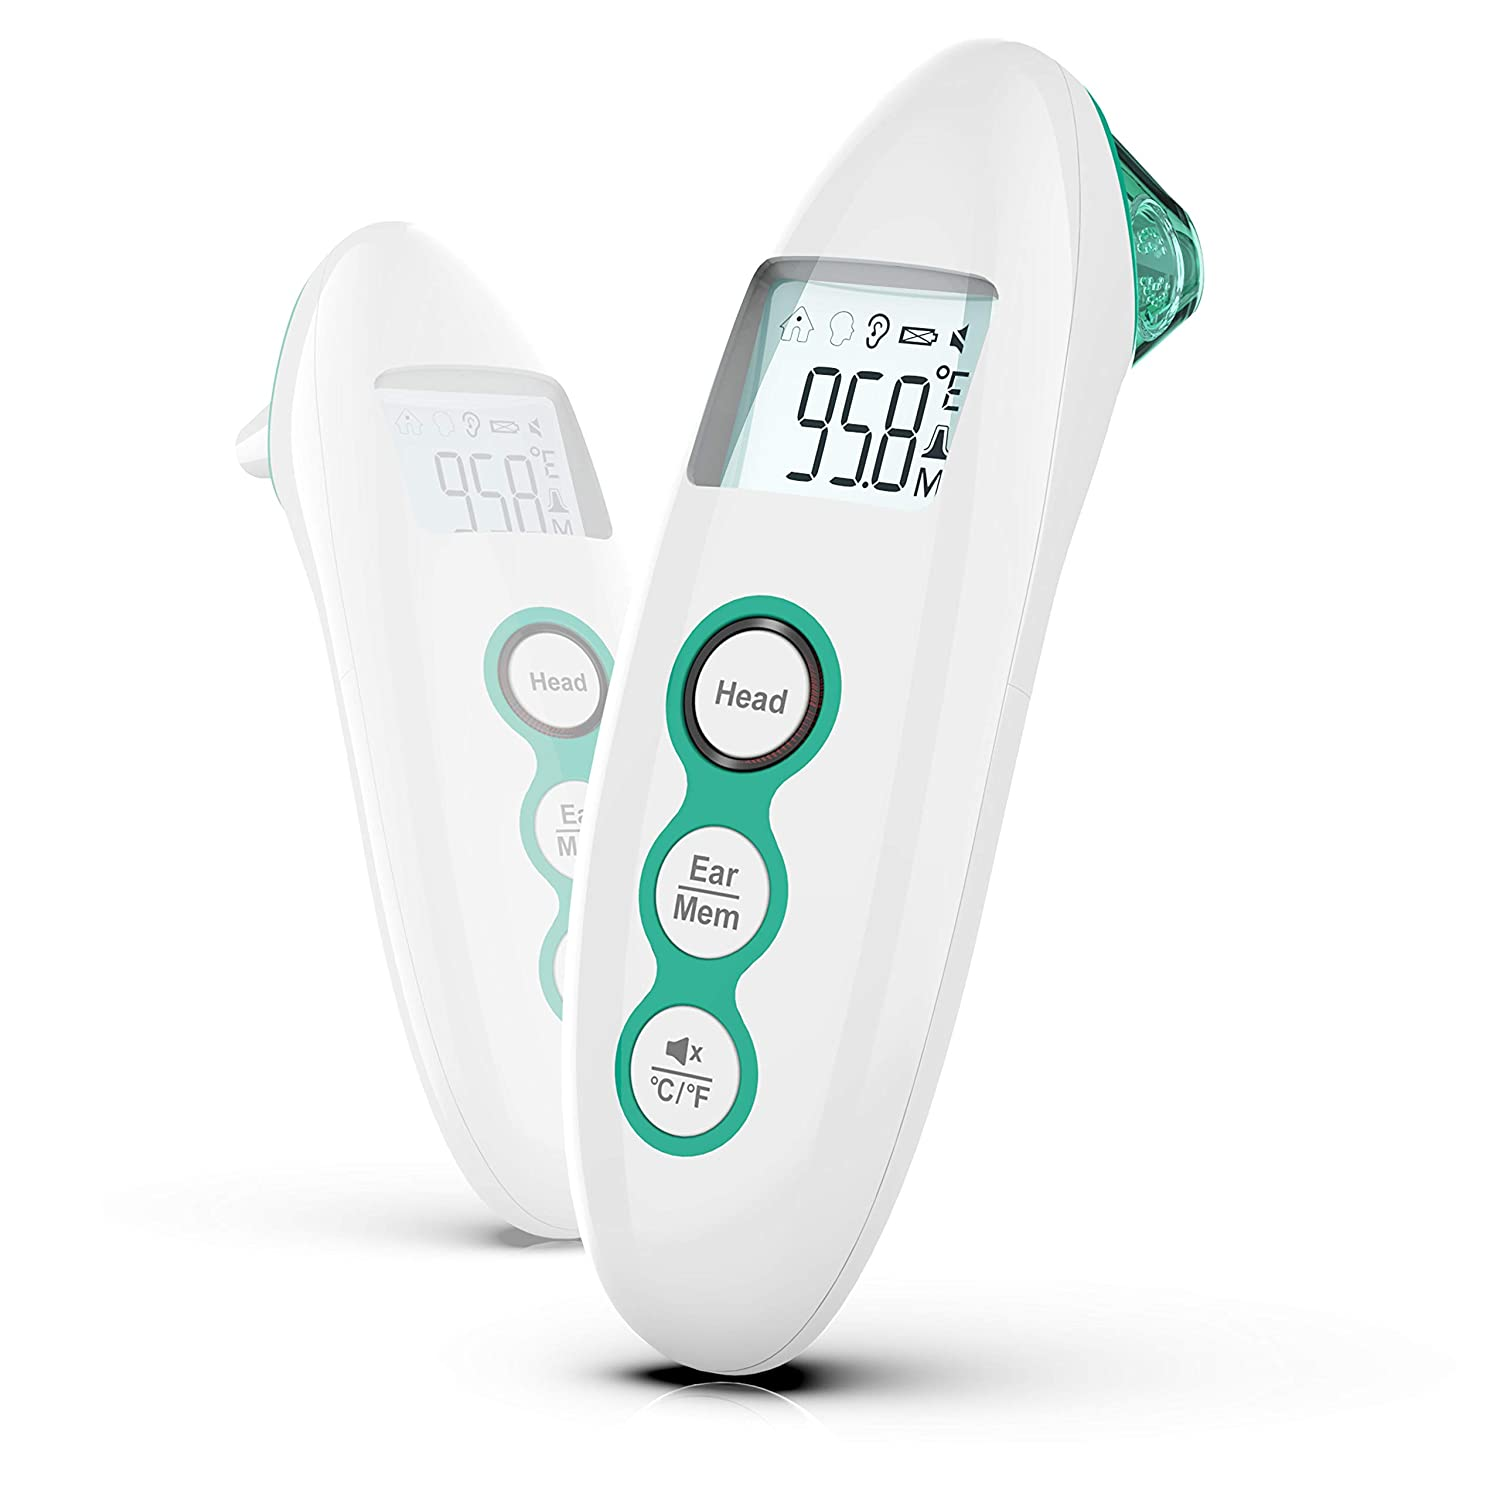 CIZA Forehead Ear Thermometer, Dual-mode Digital Infrared Medical Thermometer for Fever for Baby Kids Adults and Room Object, Accurate and Fast Instant Reading